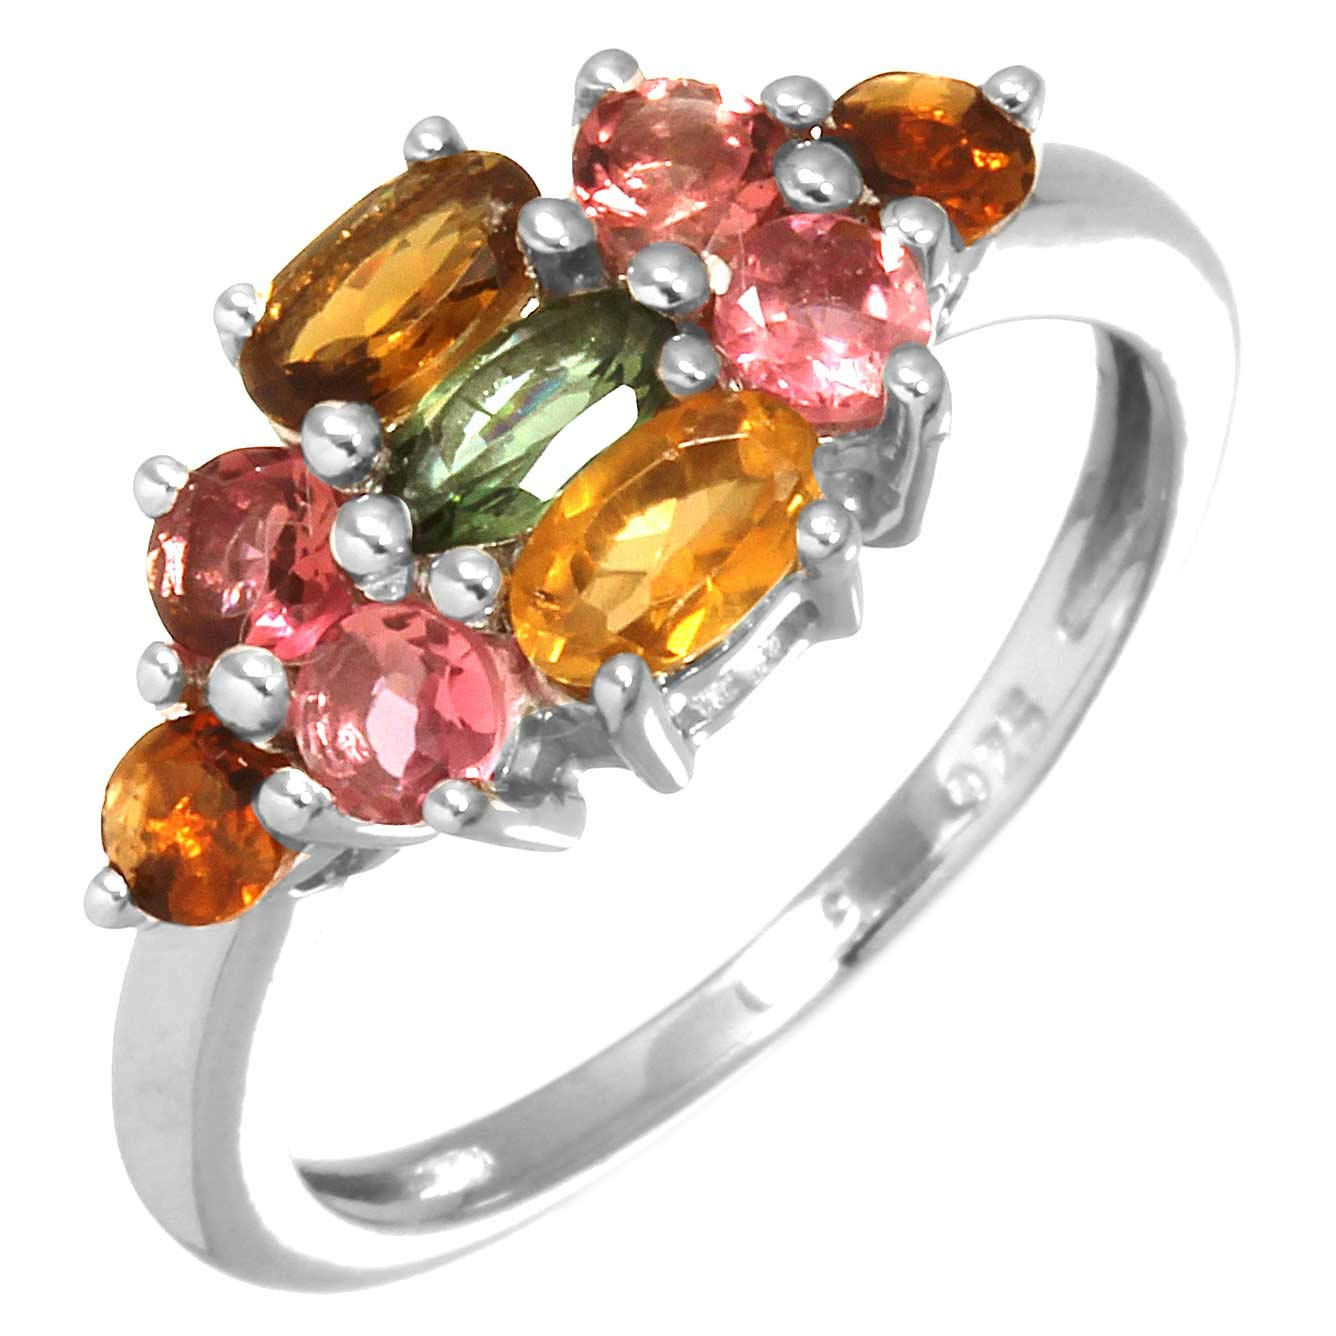 Solid 925 Sterling Silver Designer Jewelry Natural Multi Tourmaline Gemstone Ring Size 6